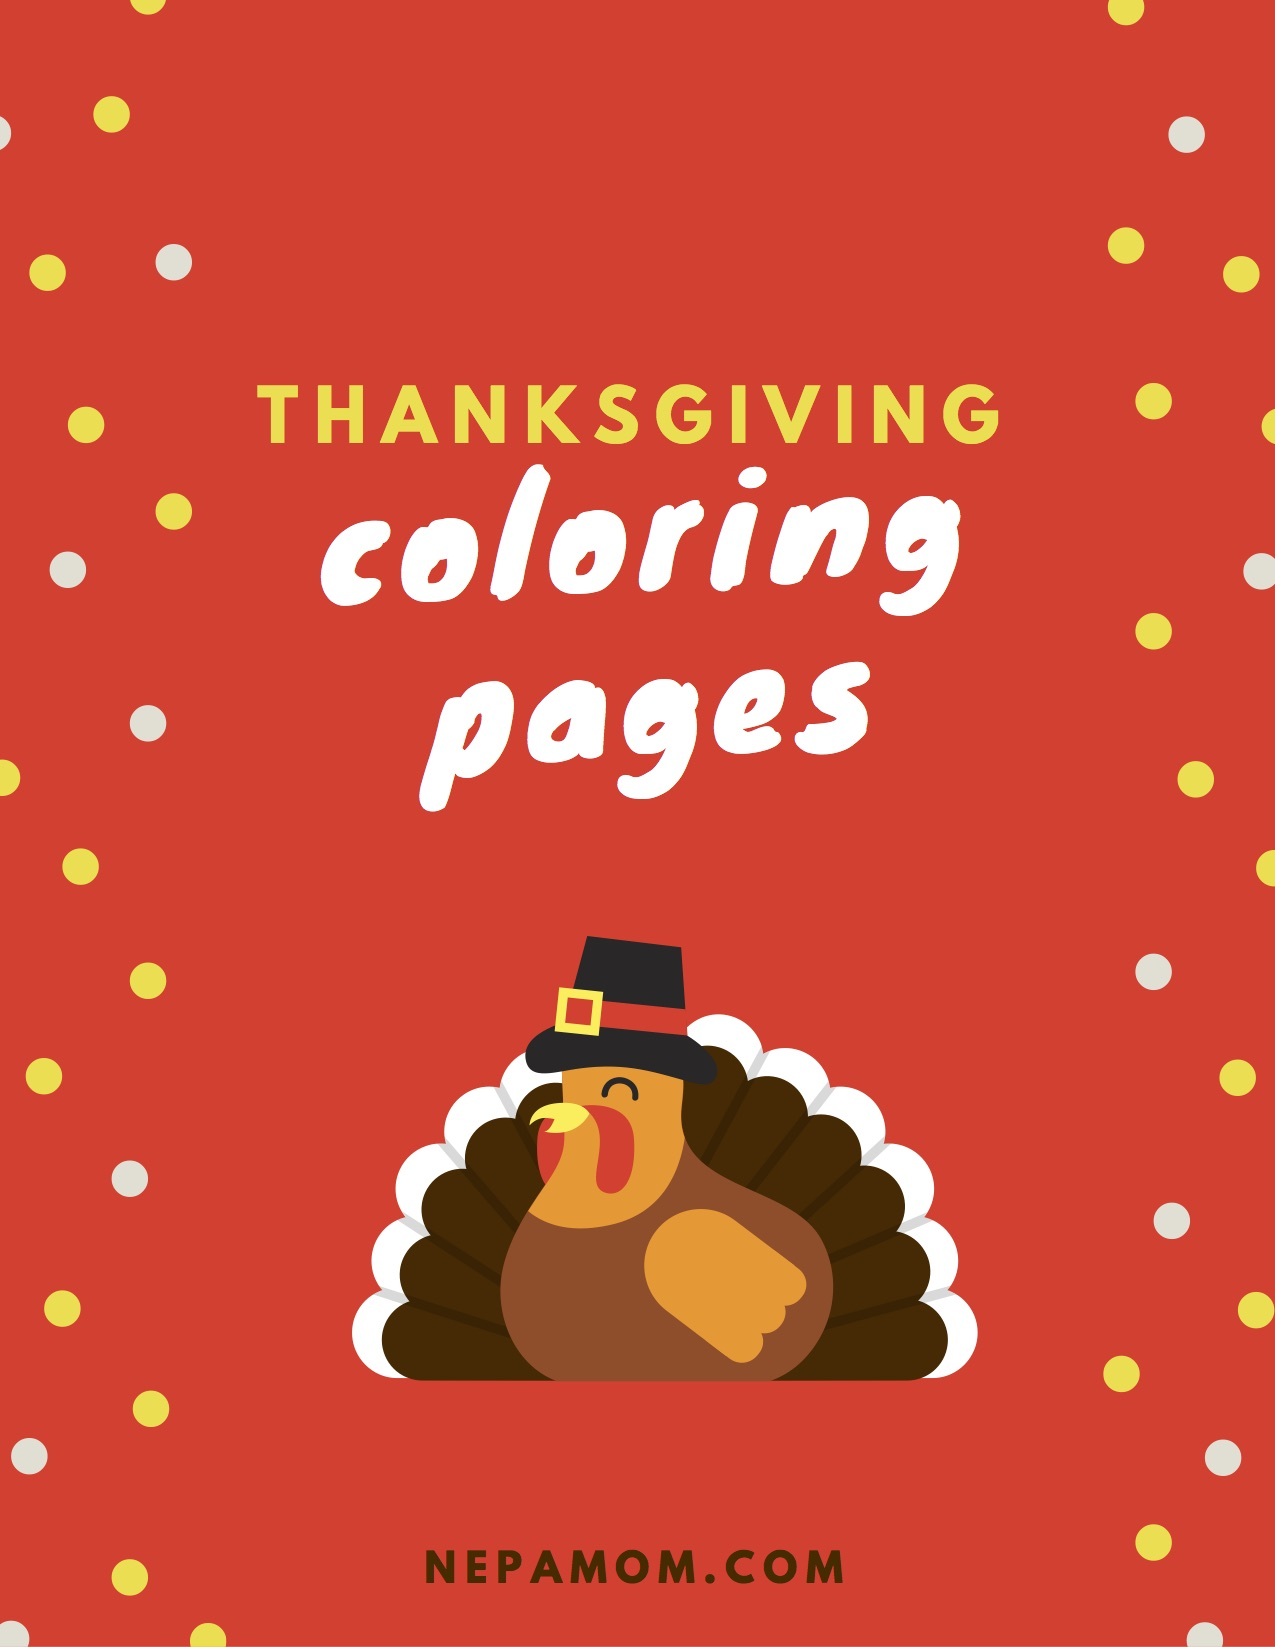 Thanksgiving Color Pages--Lots of fun coloring pages to keep the kids busy on Thanksgiving Day!